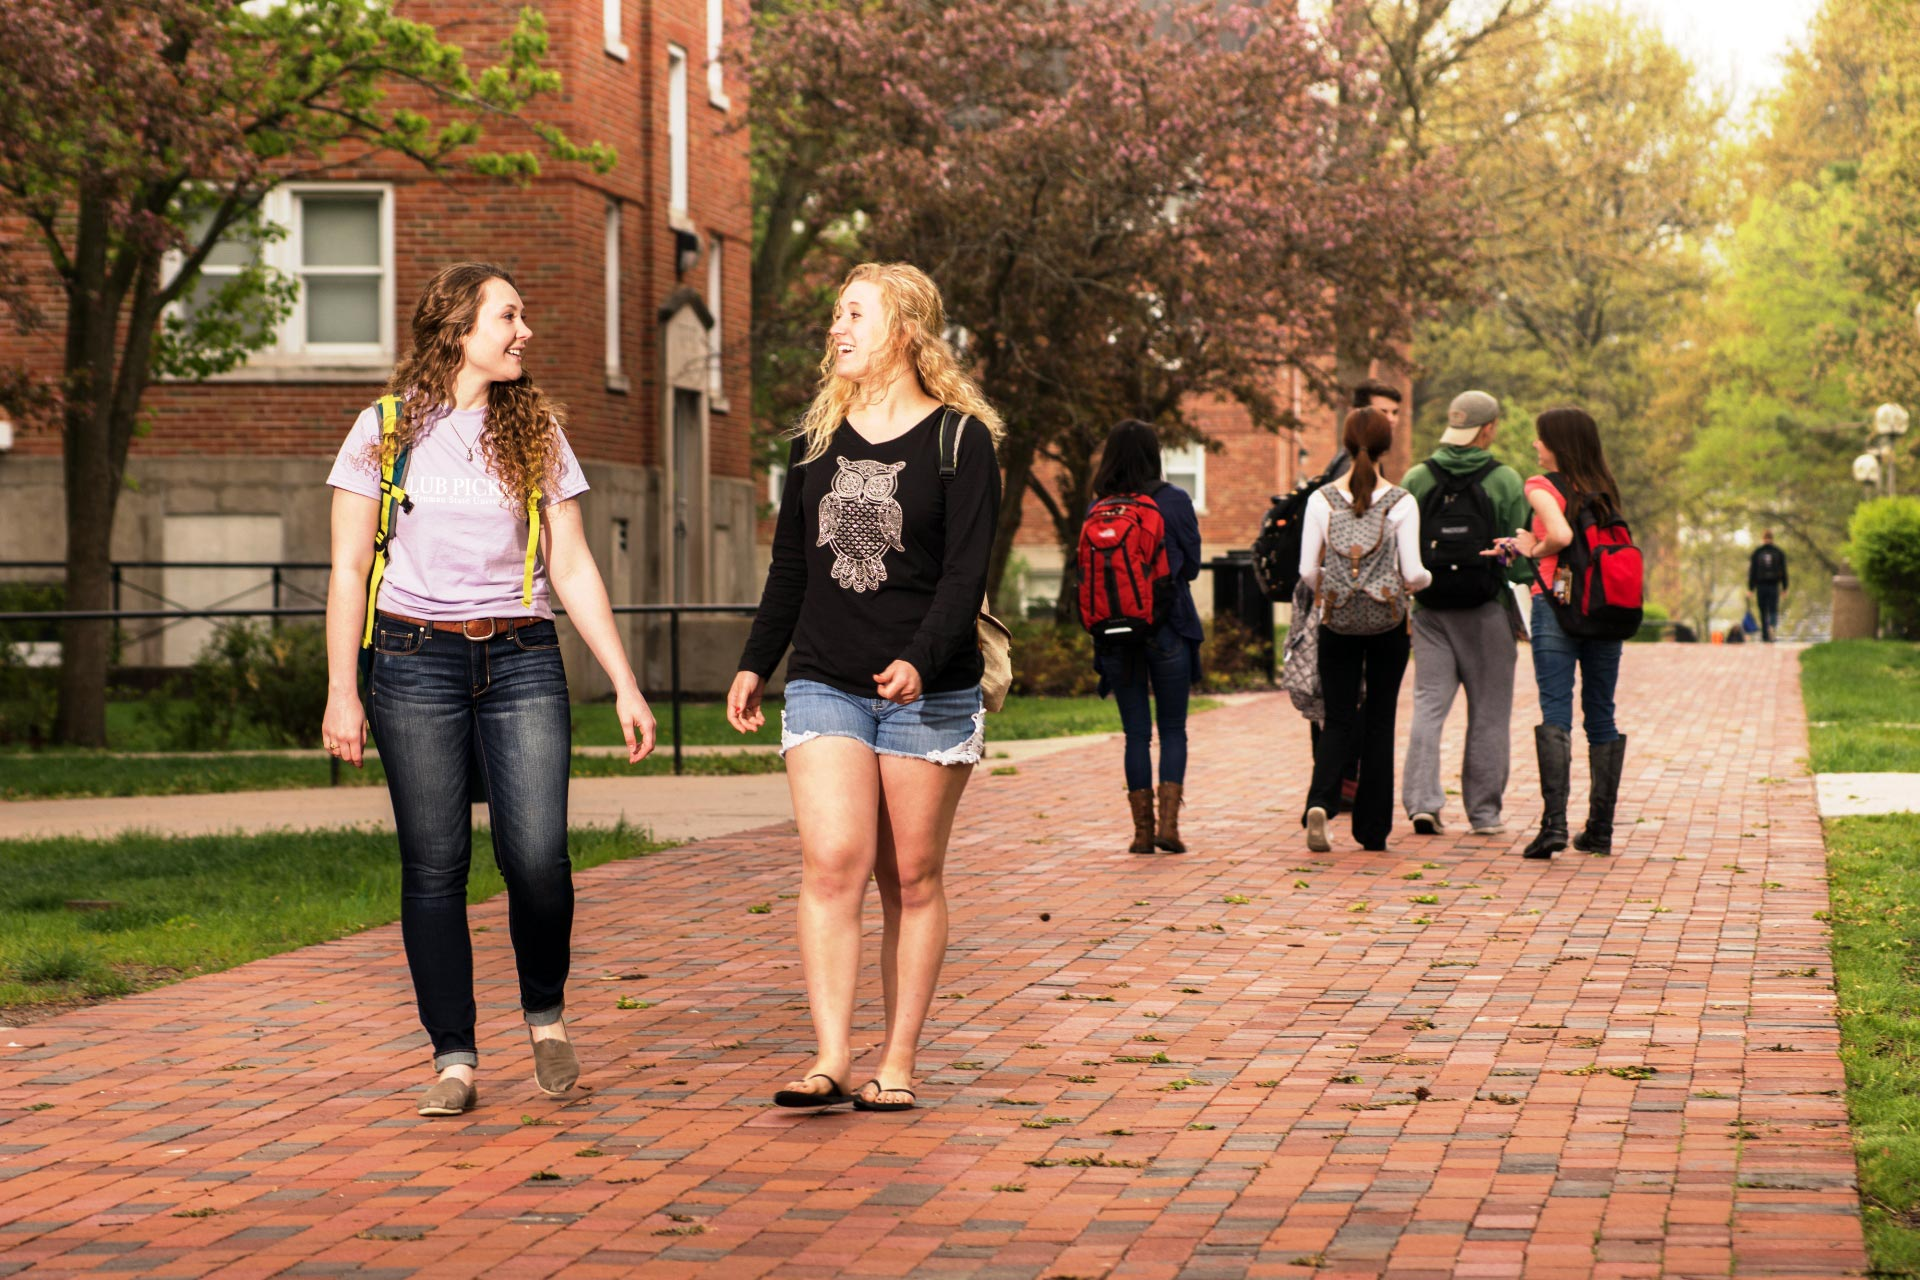 Students on the Truman campus